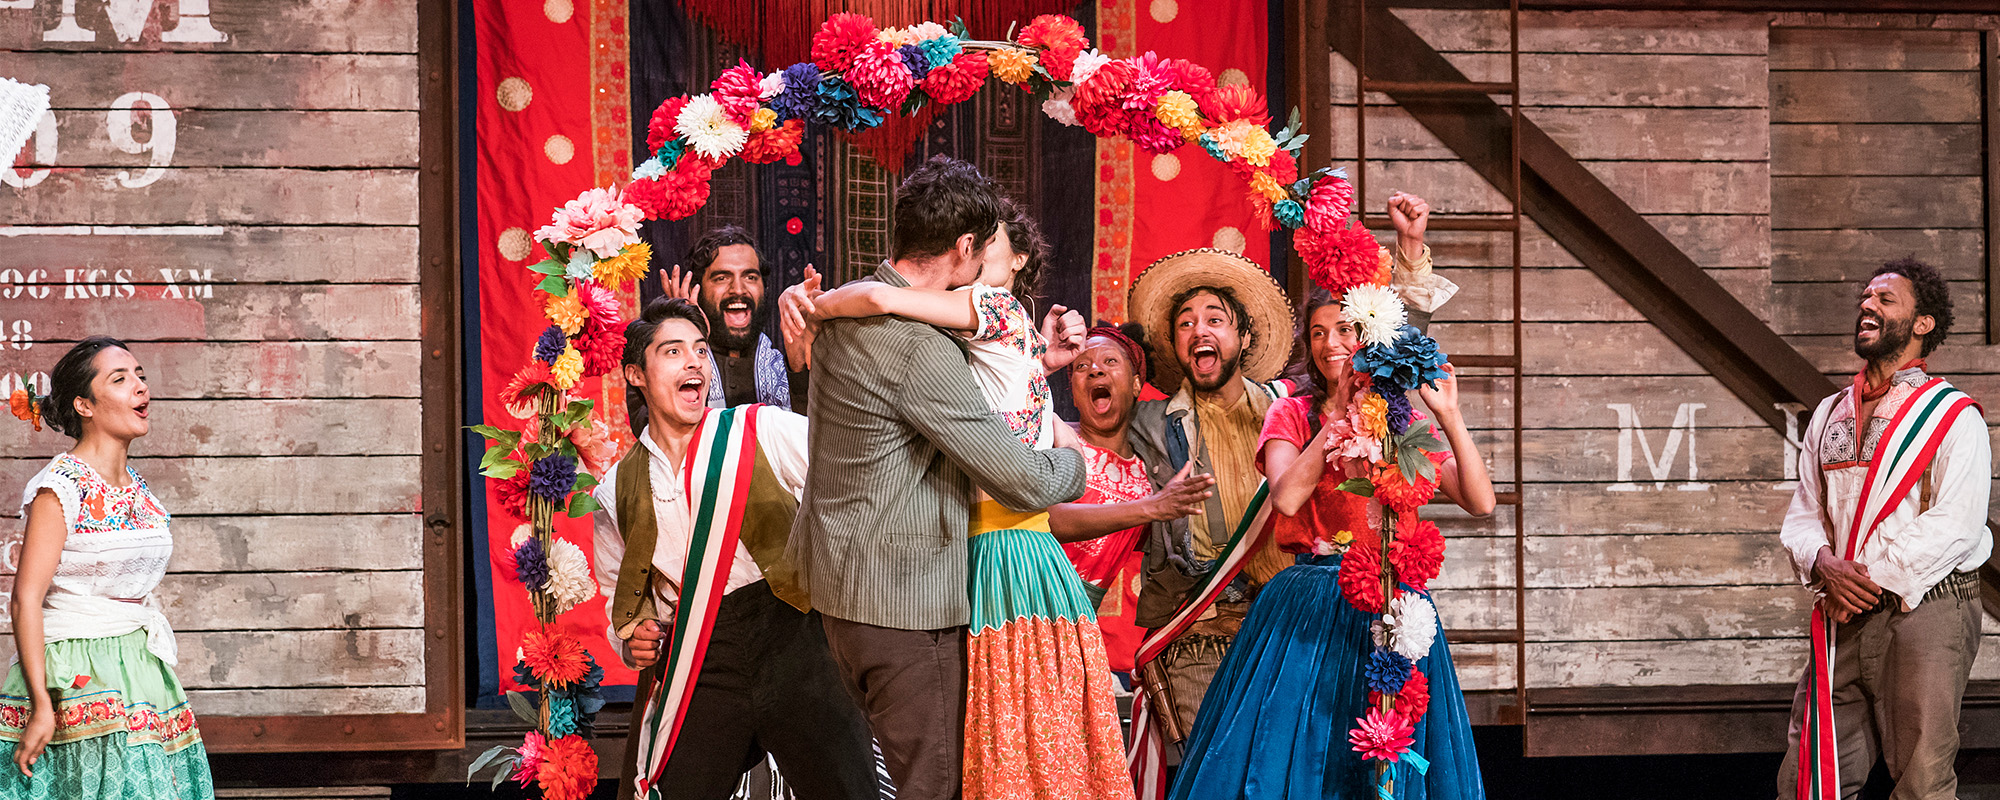 Beatrice and Benedick embrace and kiss surrounded by onlookers. The stage is full of brightly coloured decorations and costumes.